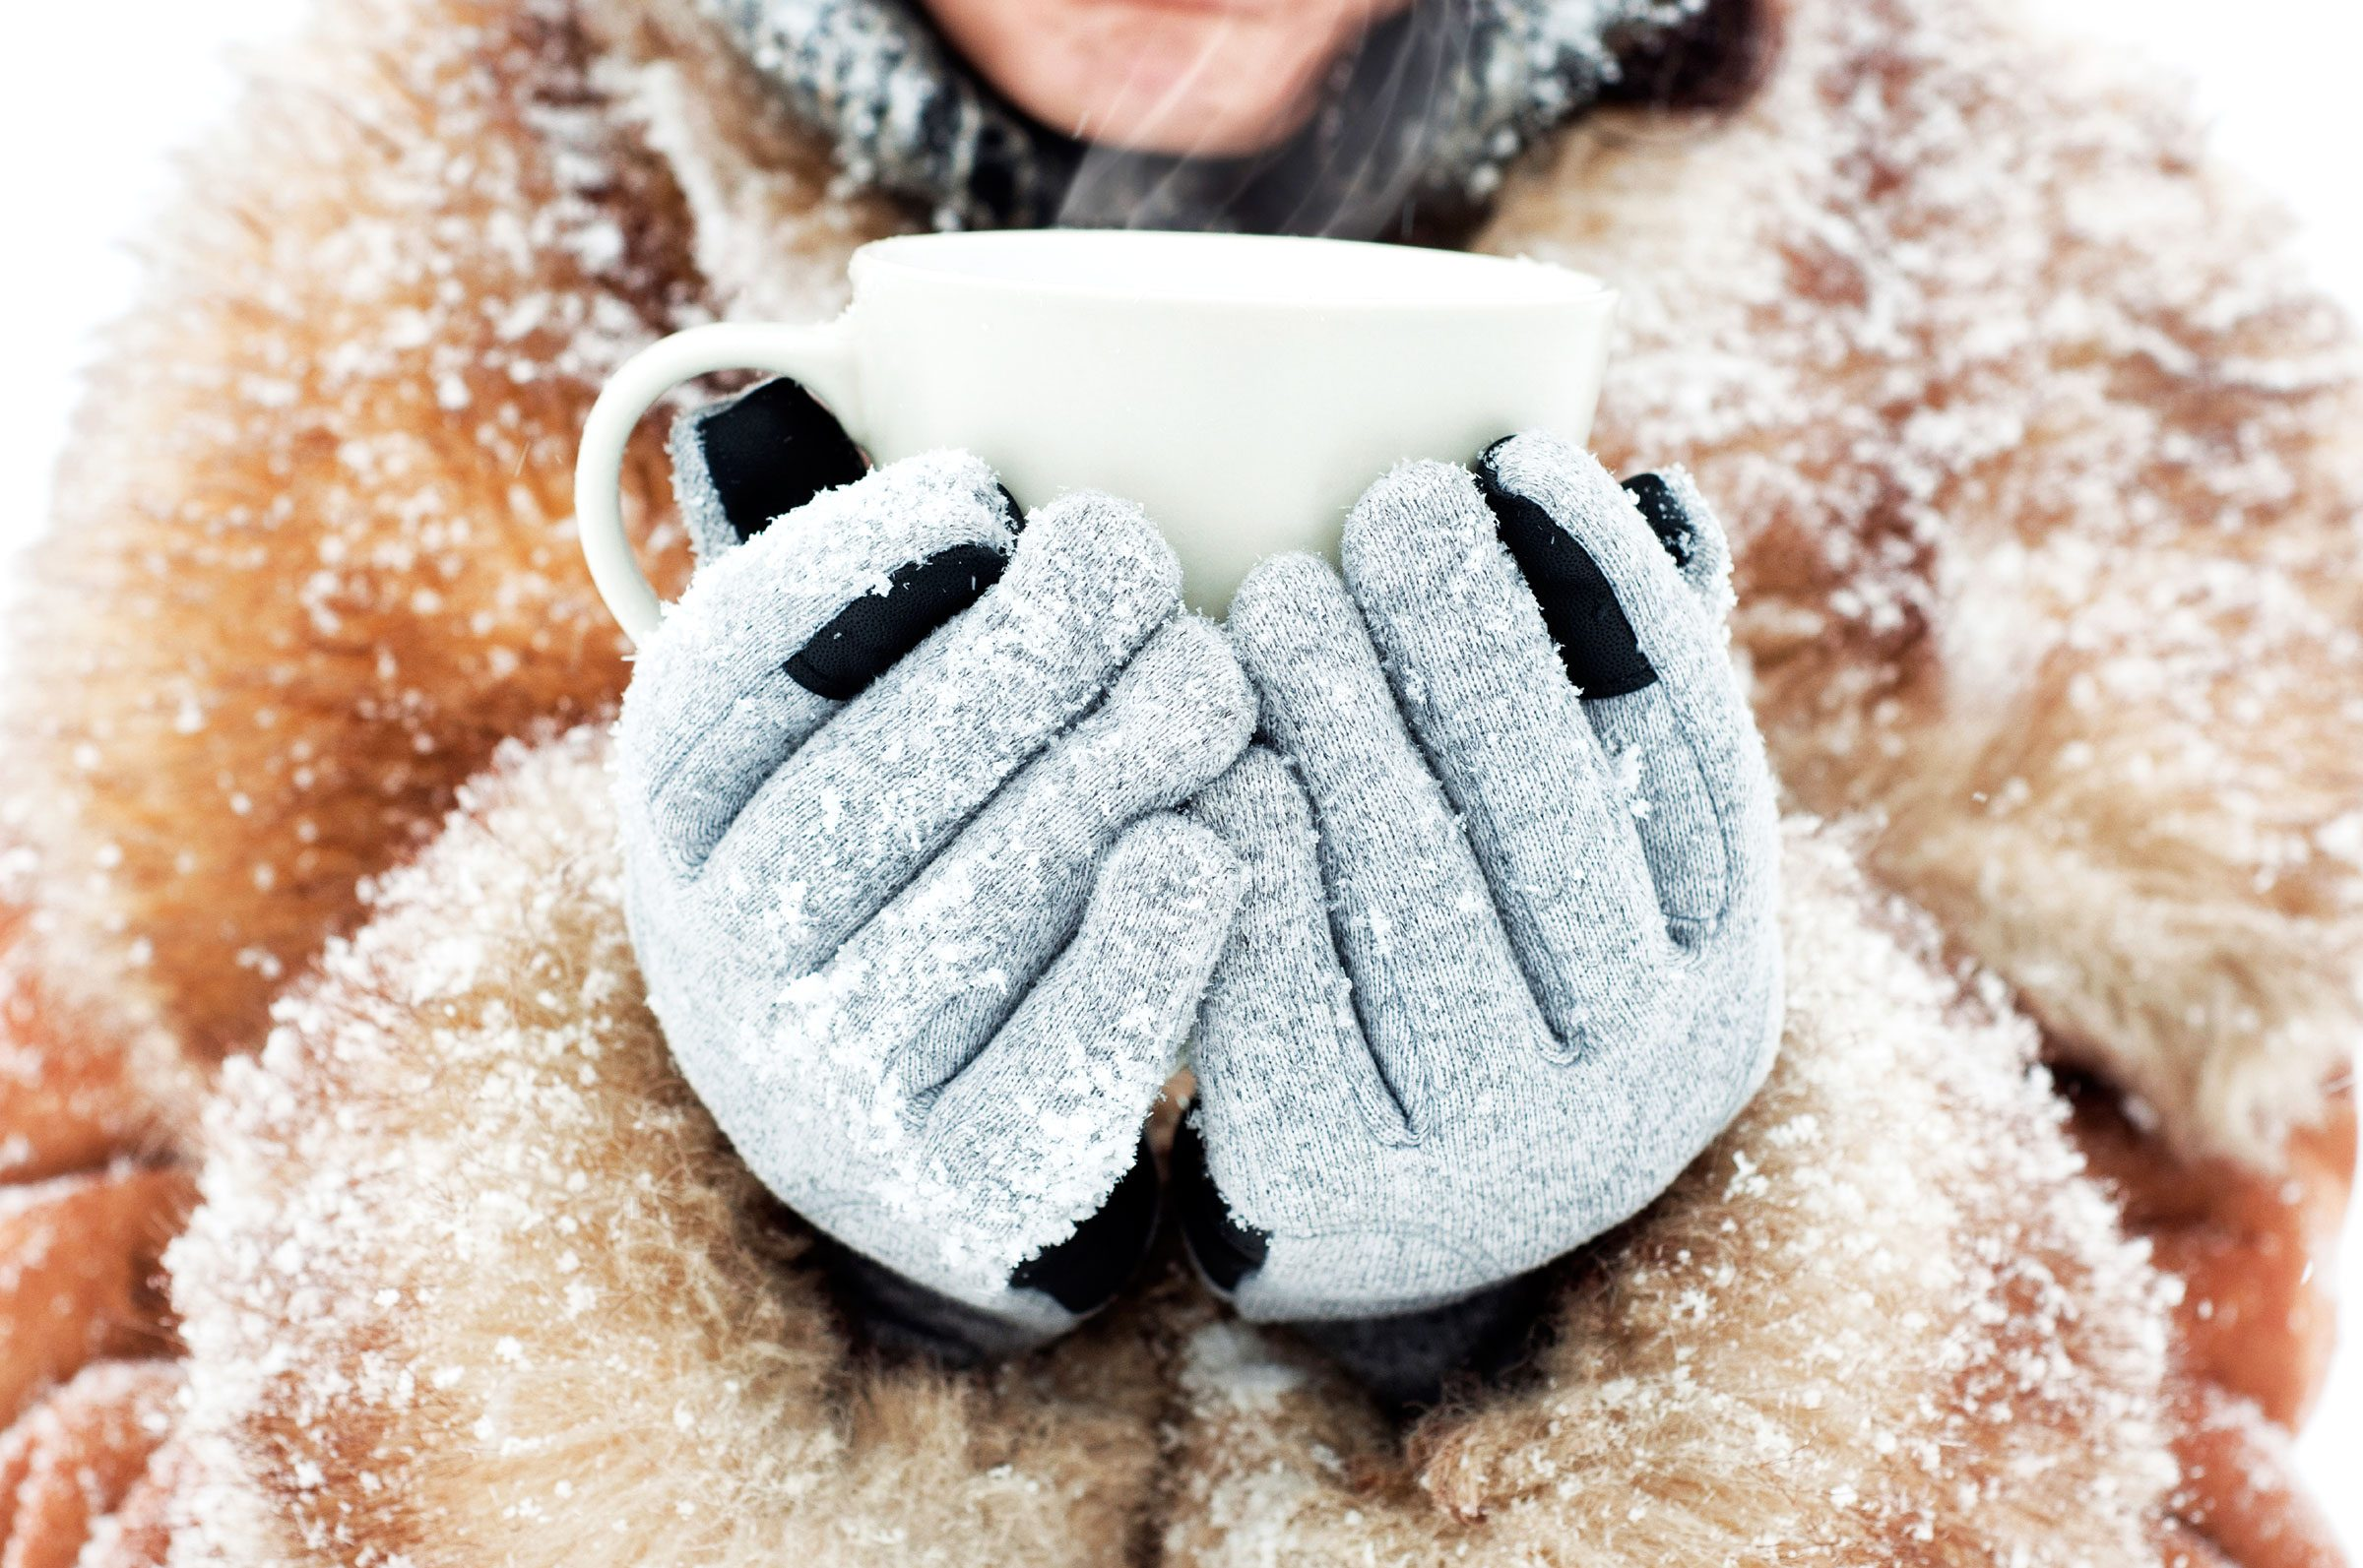 Having done this, you will not be cold in winter